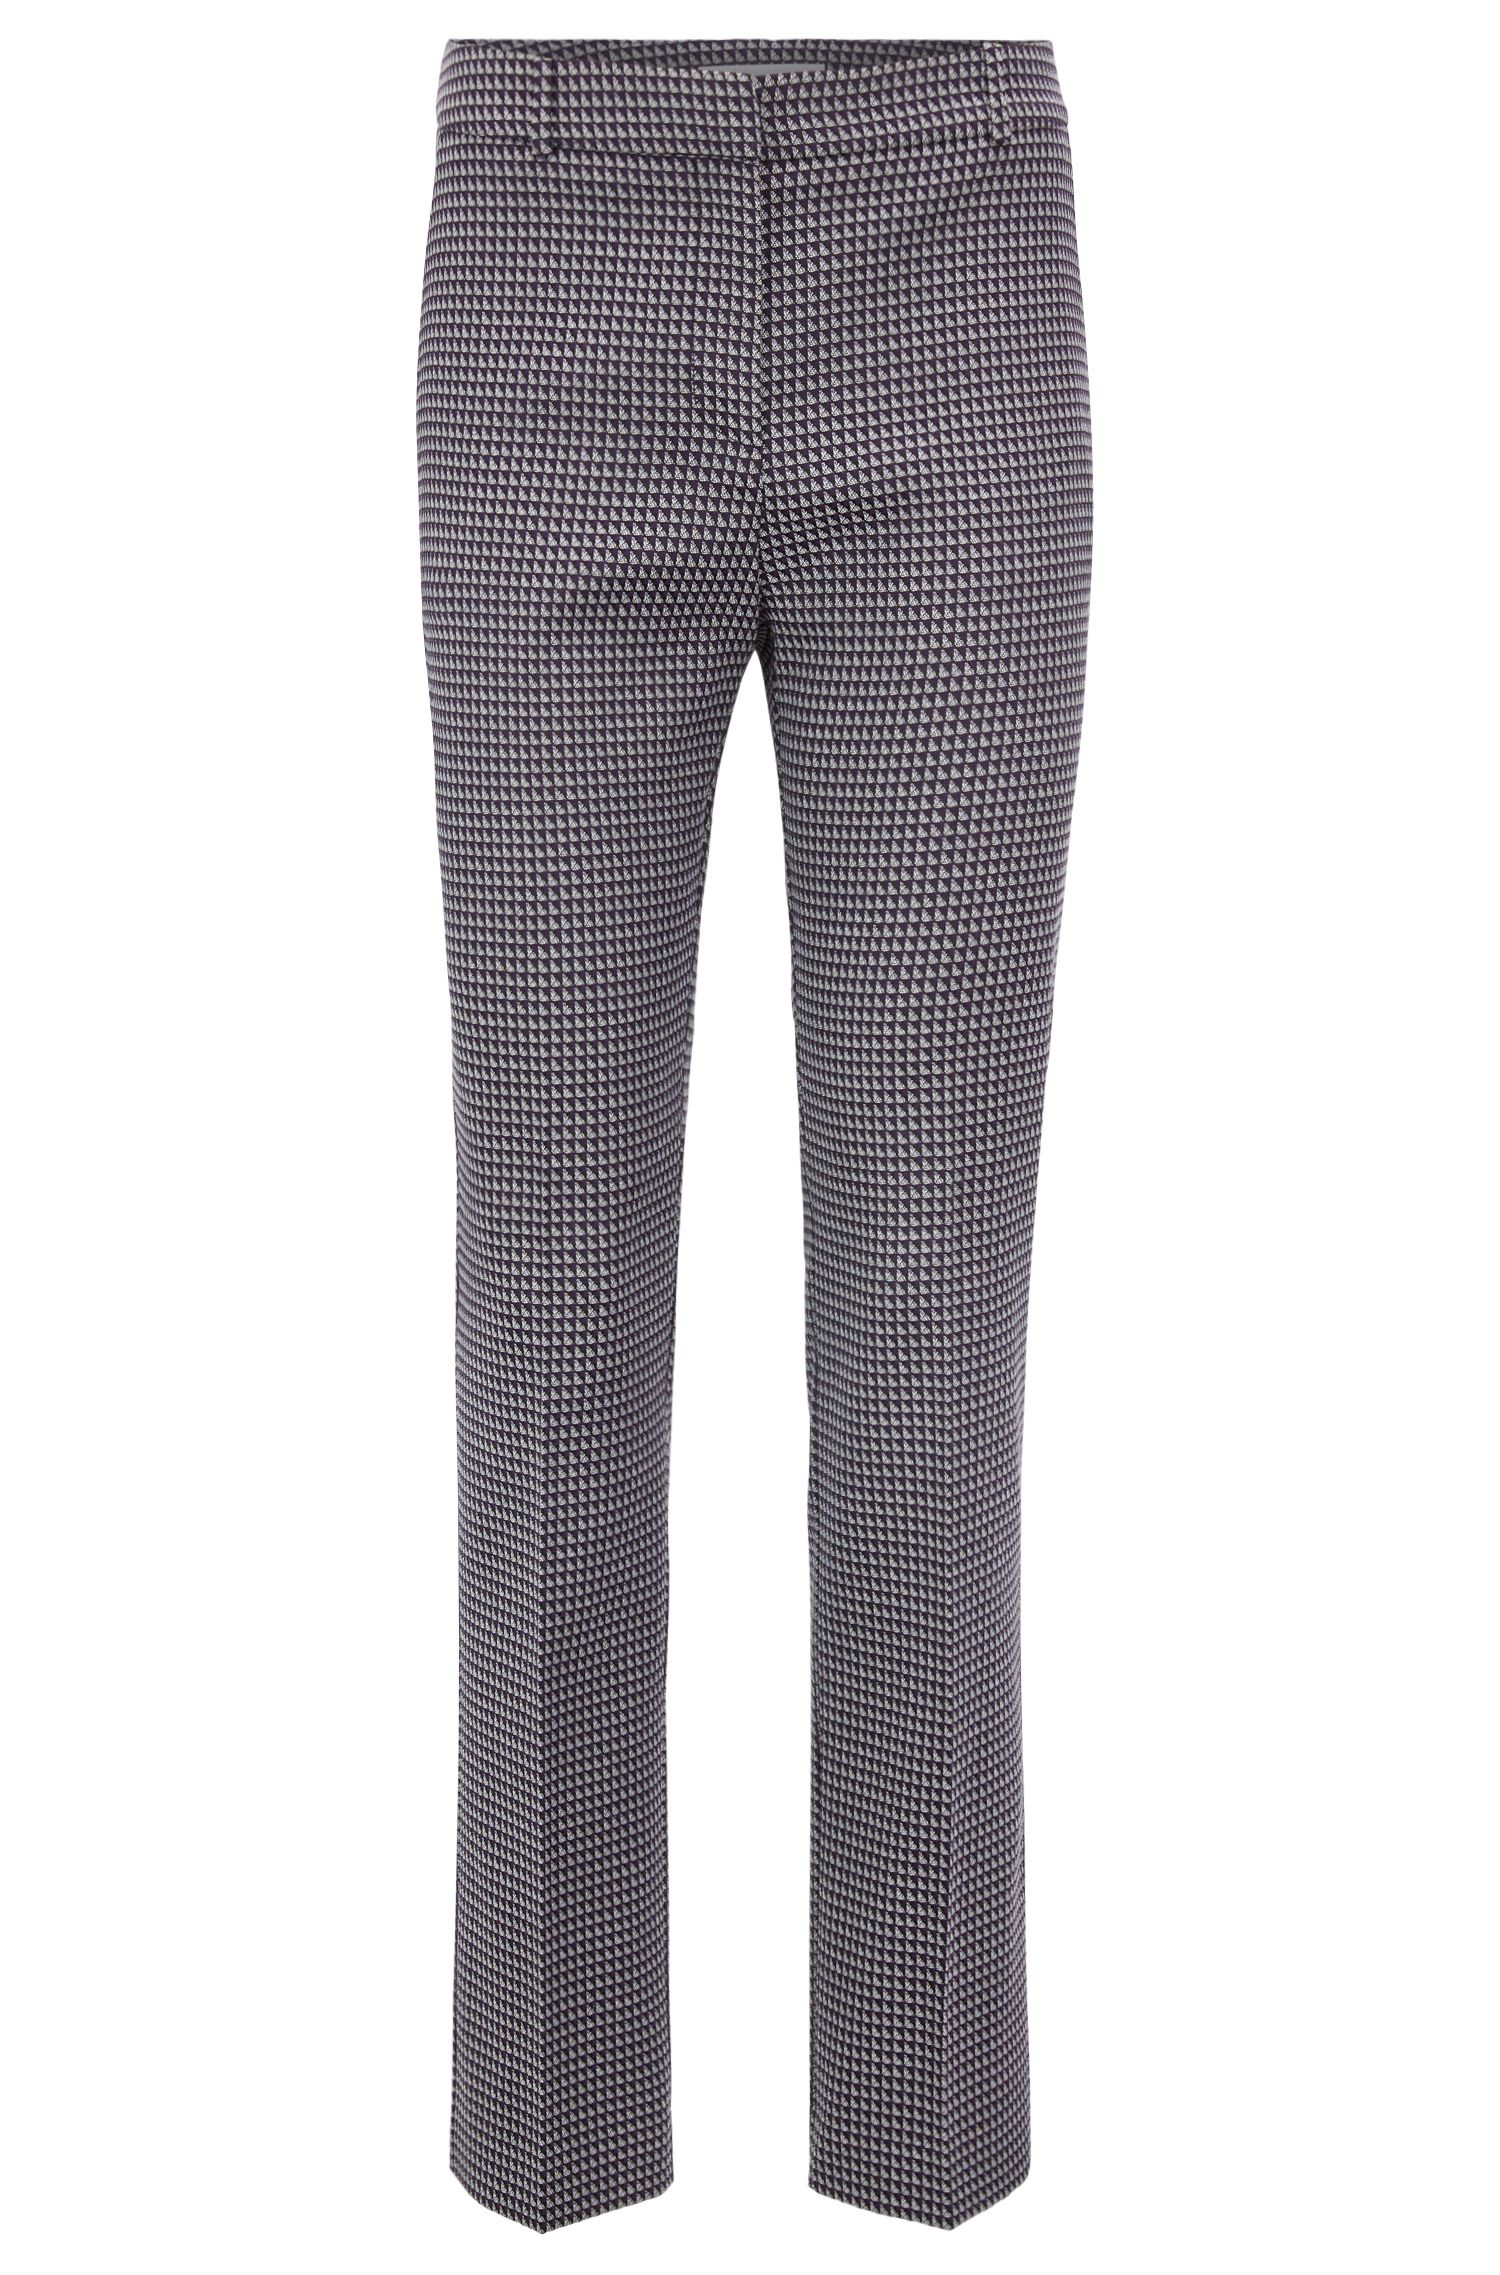 Pantalon Regular Fit en jacquard de coton stretch mélangé, Fantaisie